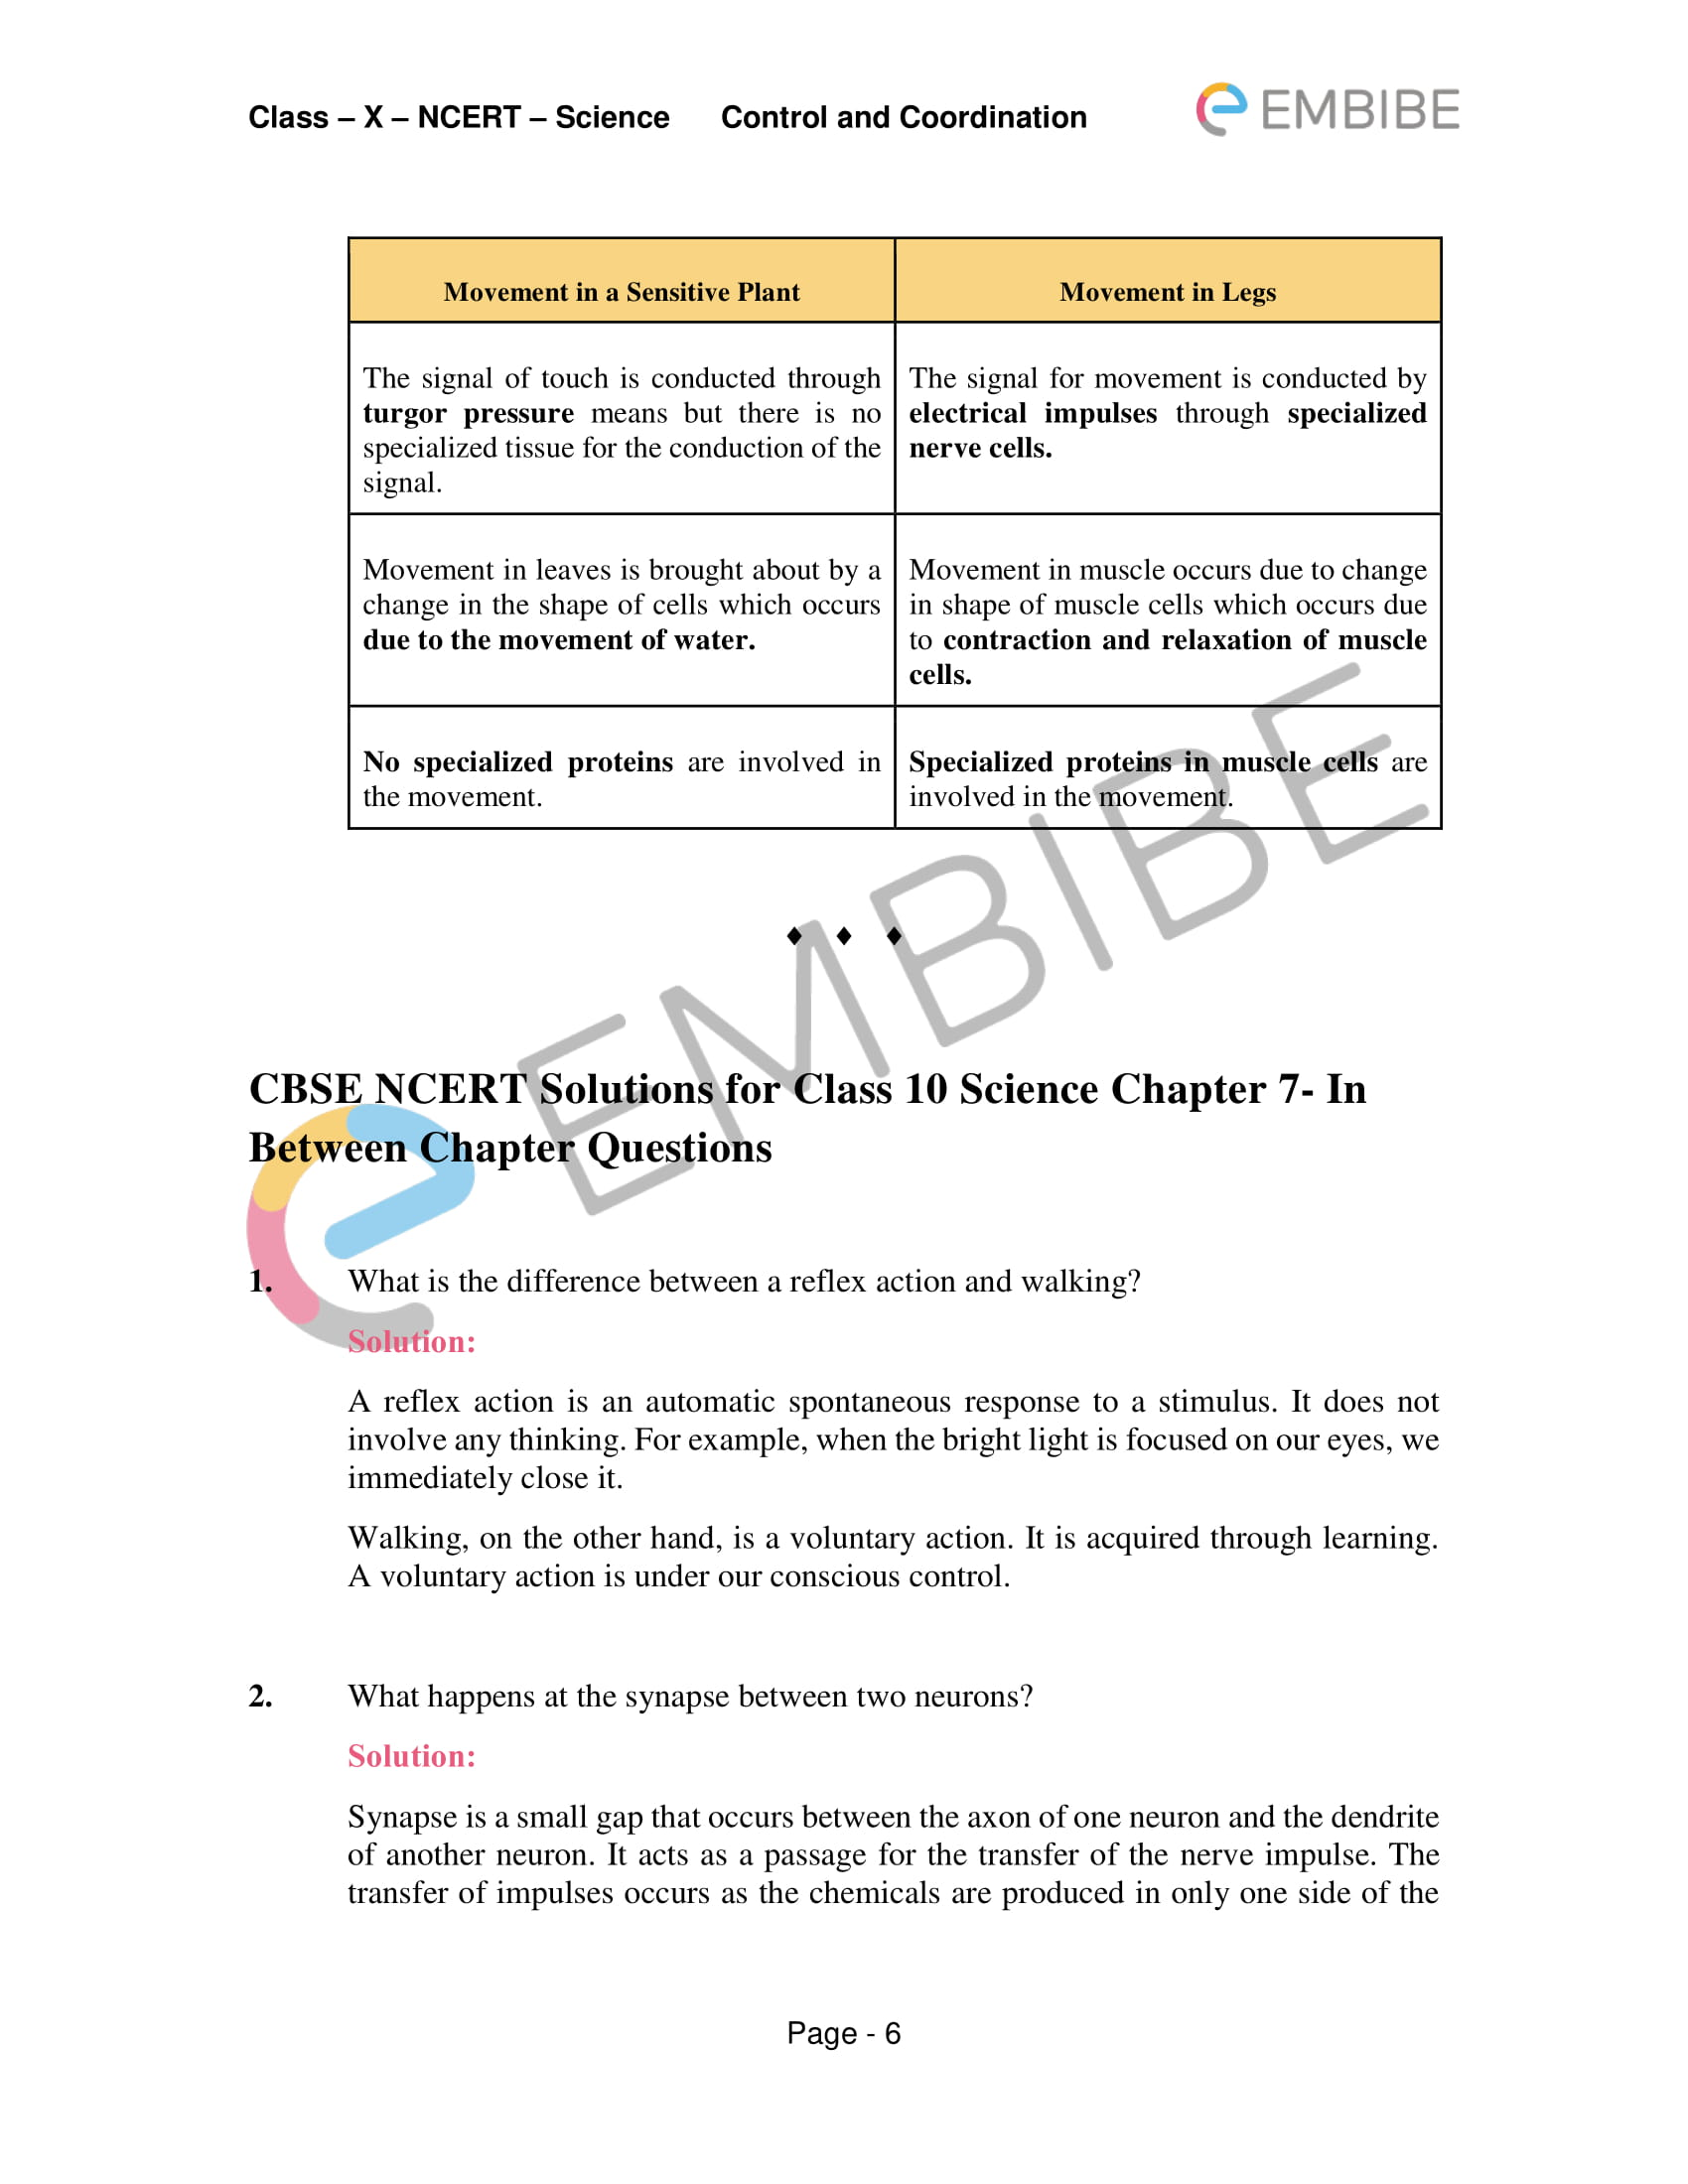 NCERT Solutions For Class 10 Science Chapter 7 Control & Coordination